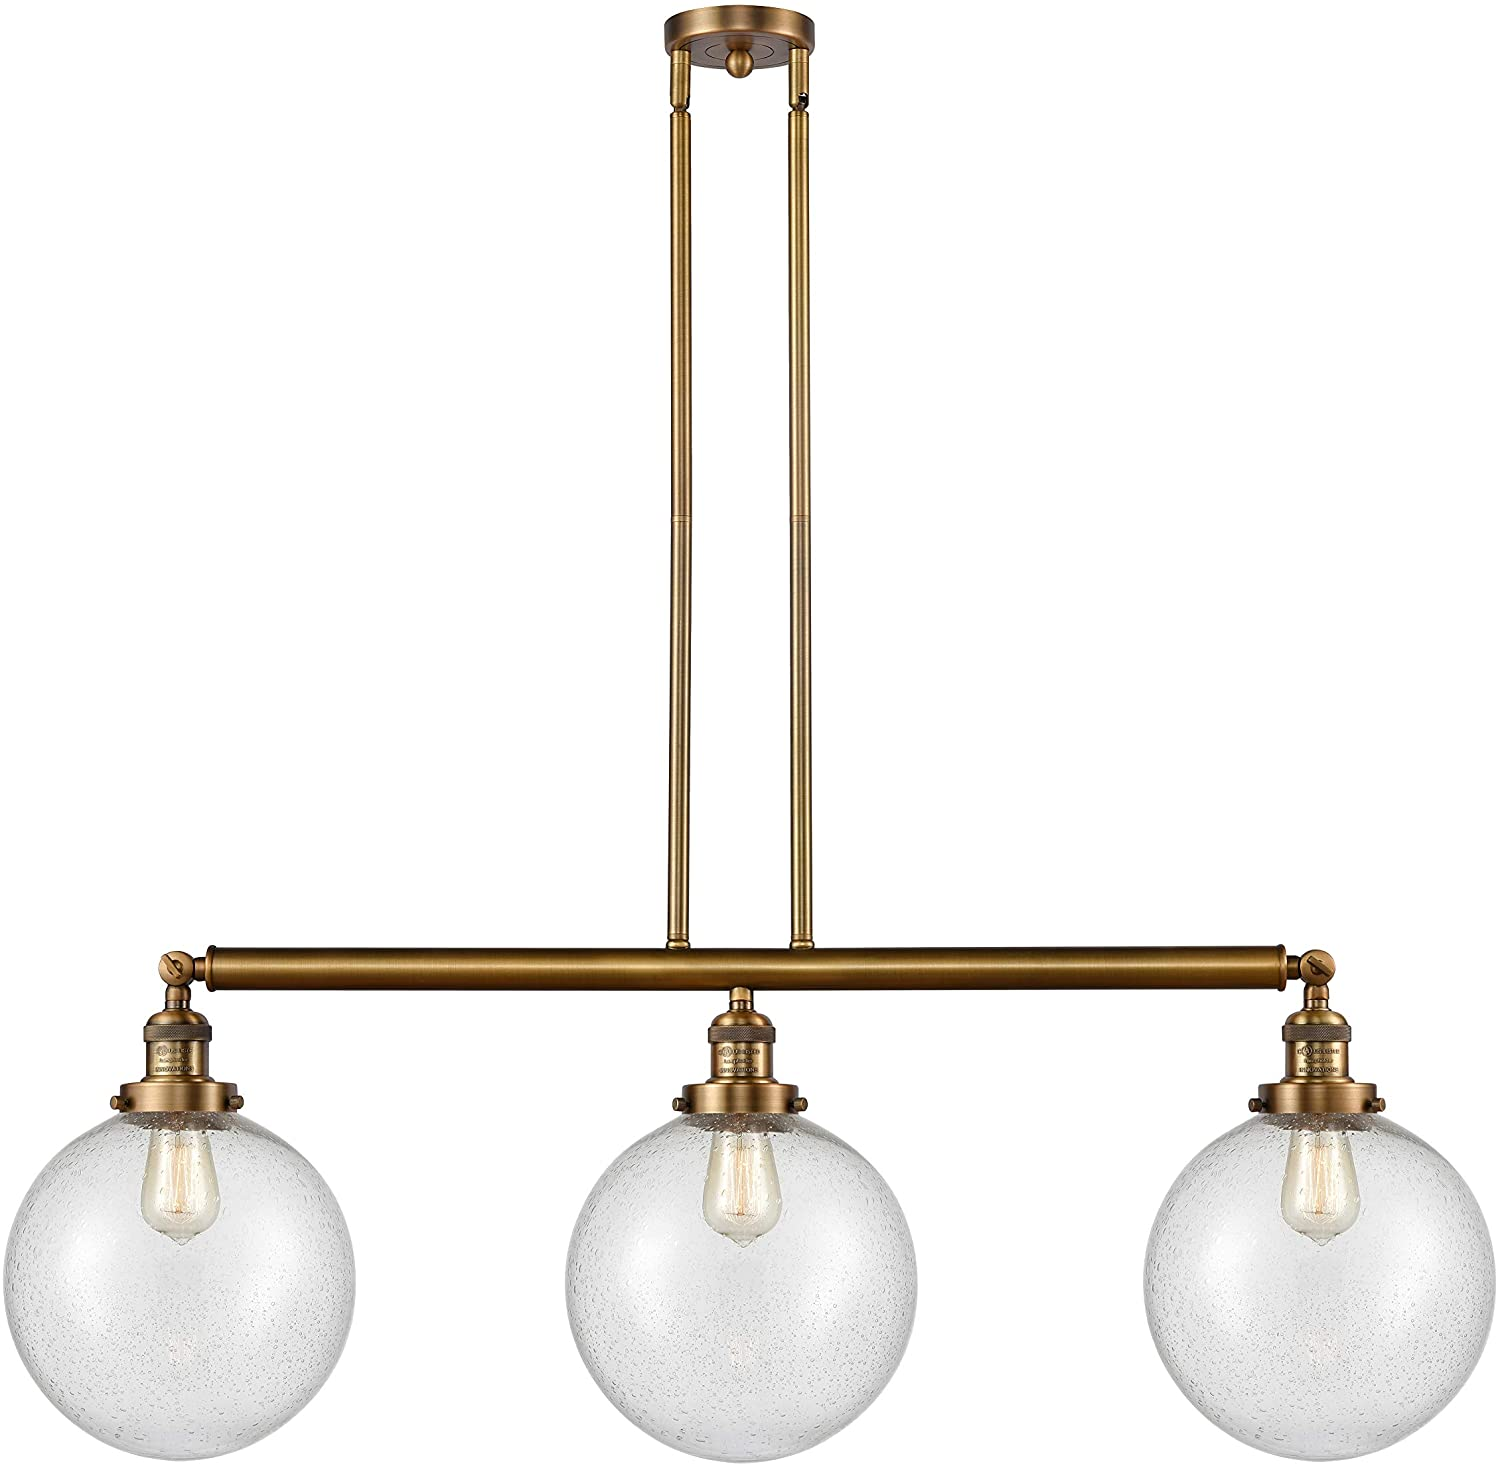 Innovations 213-BB-S-G204-10-LED X-Large Beacon 3 Island Light Part of The Franklin Restoration Collection, Brushed Brass